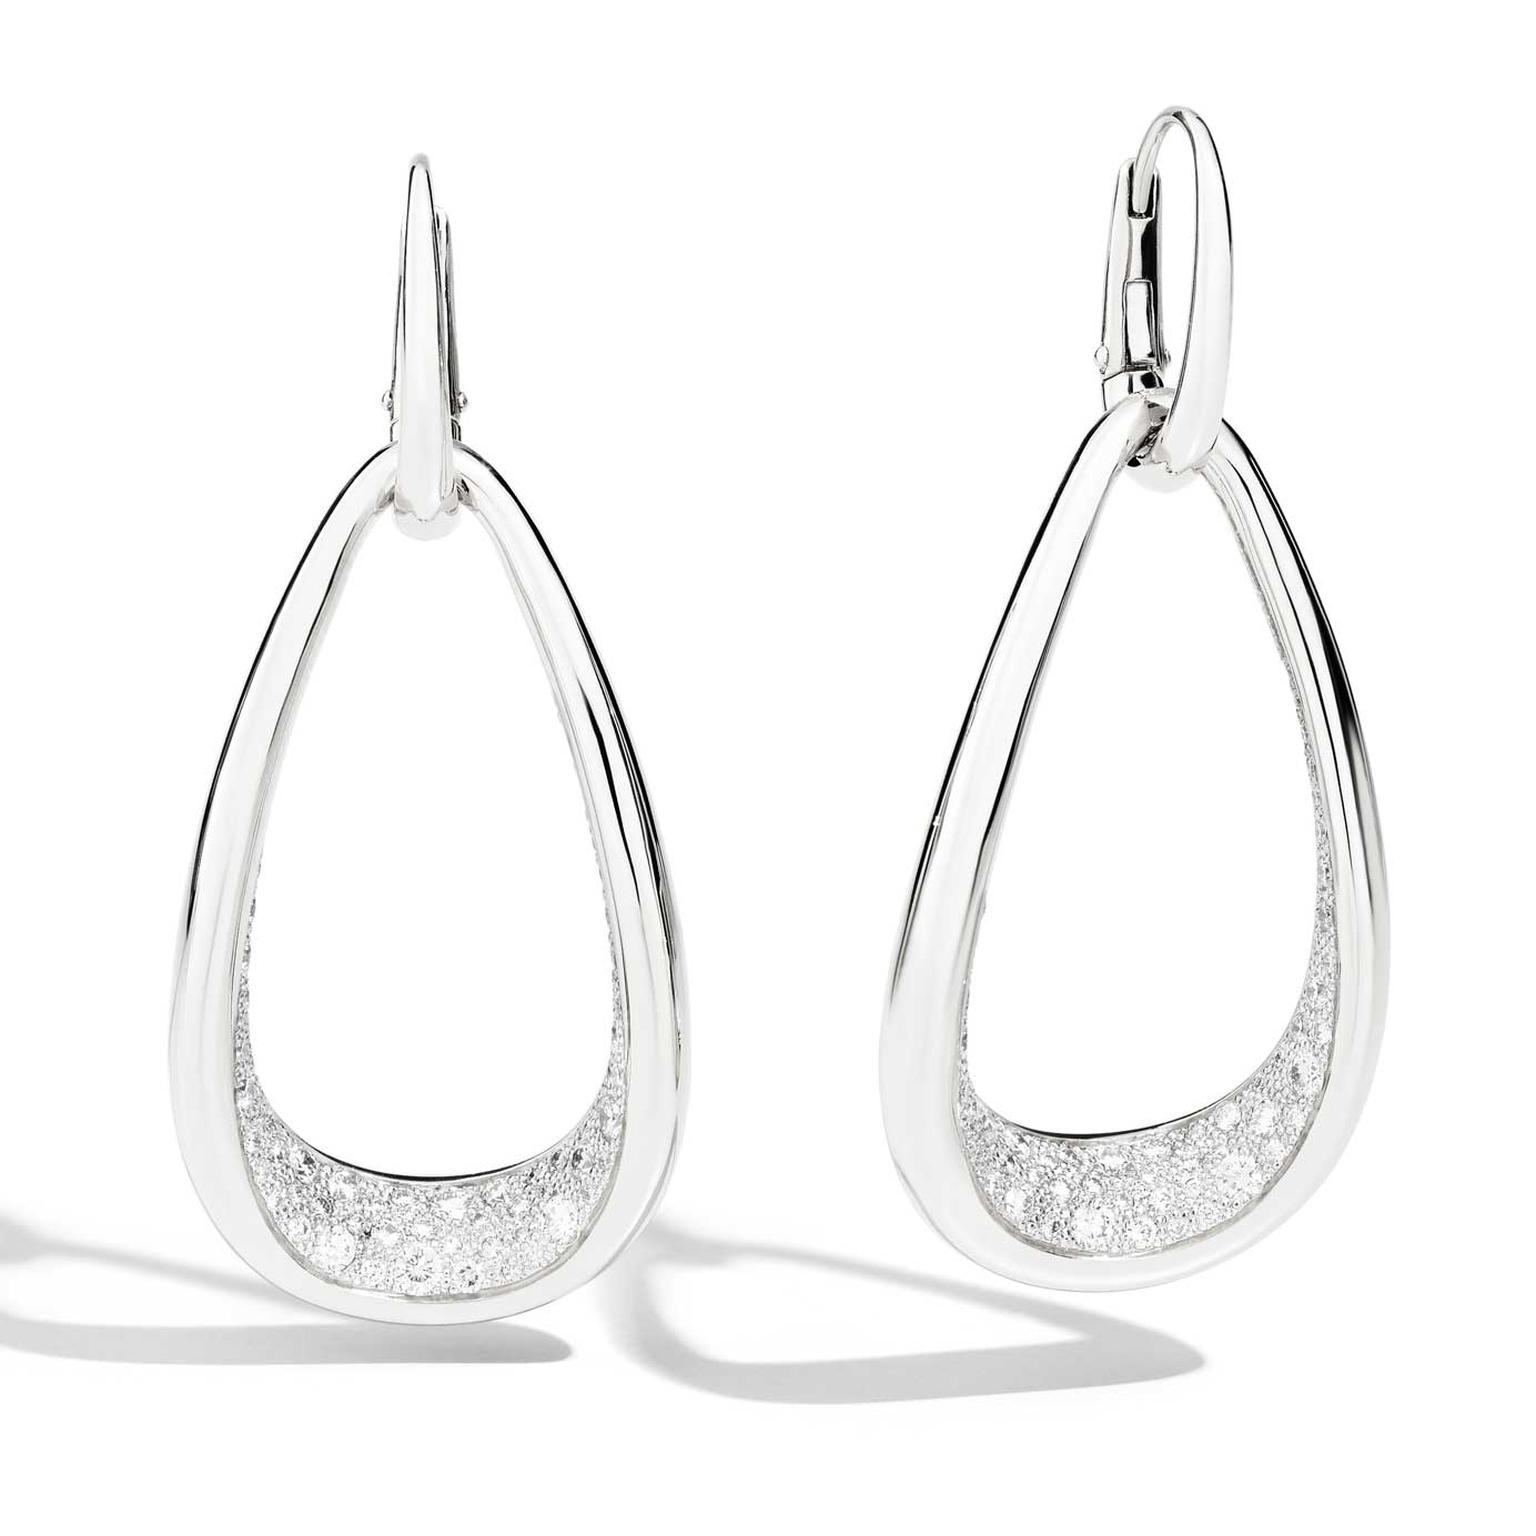 Pomellato Fantina earrings in white gold and diamonds